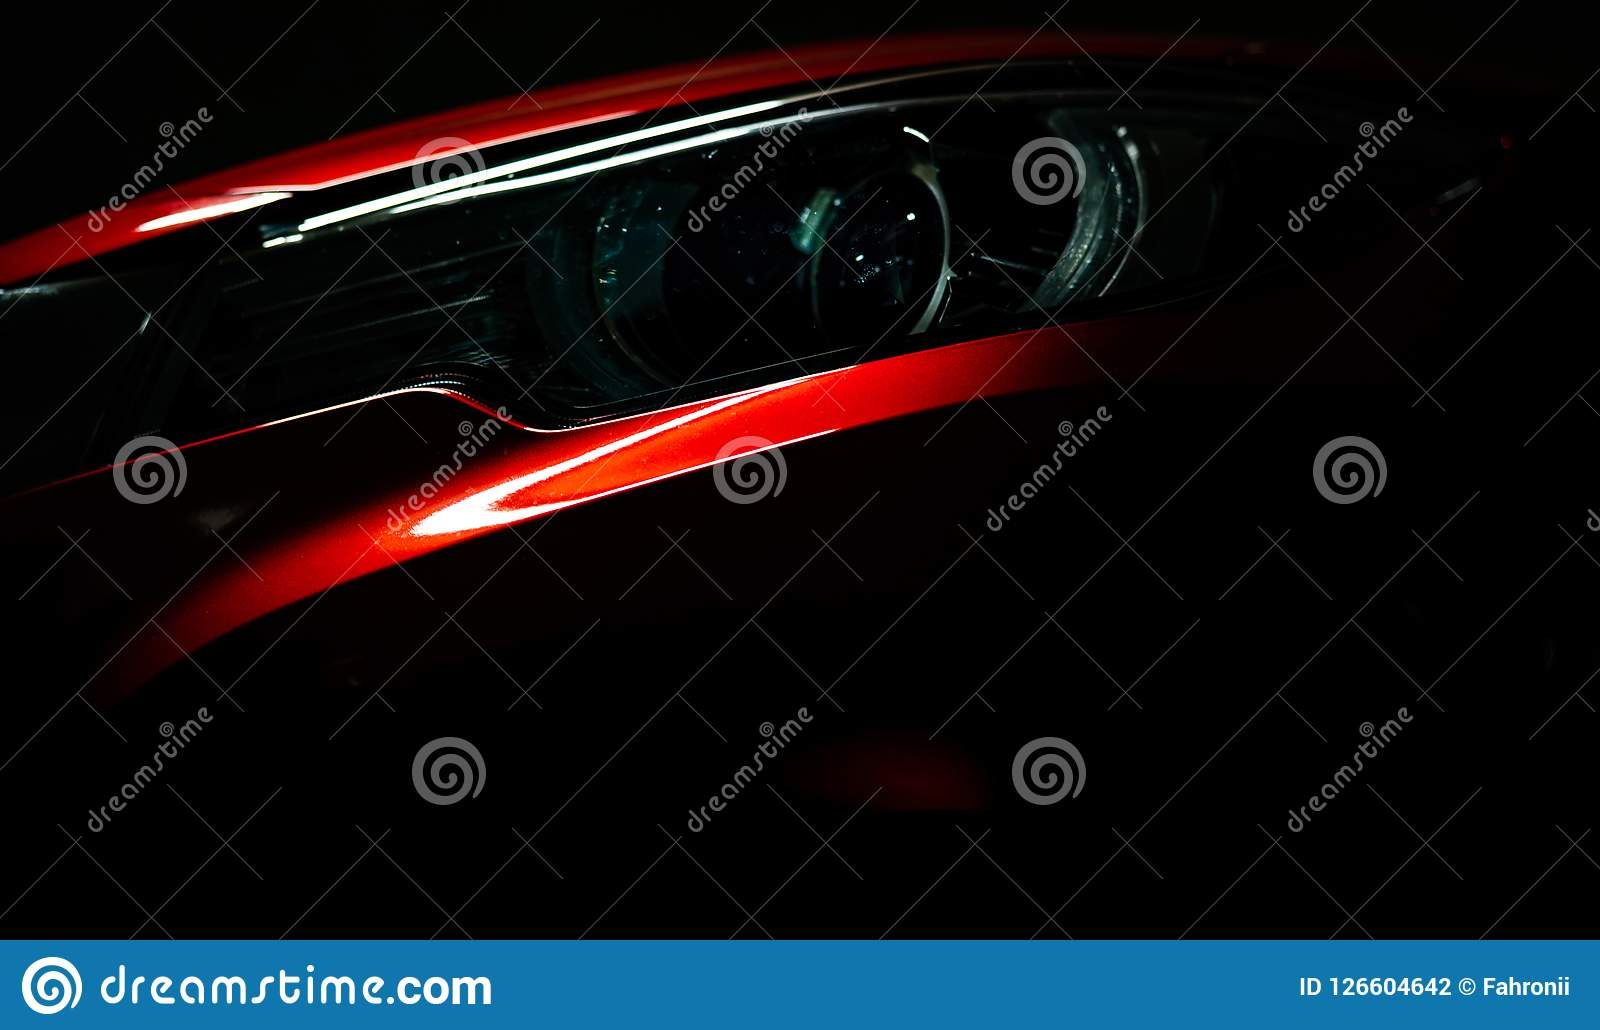 Closeup headlight of shiny red luxury SUV compact car. Elegant electric car technology and business concept. Hybrid auto